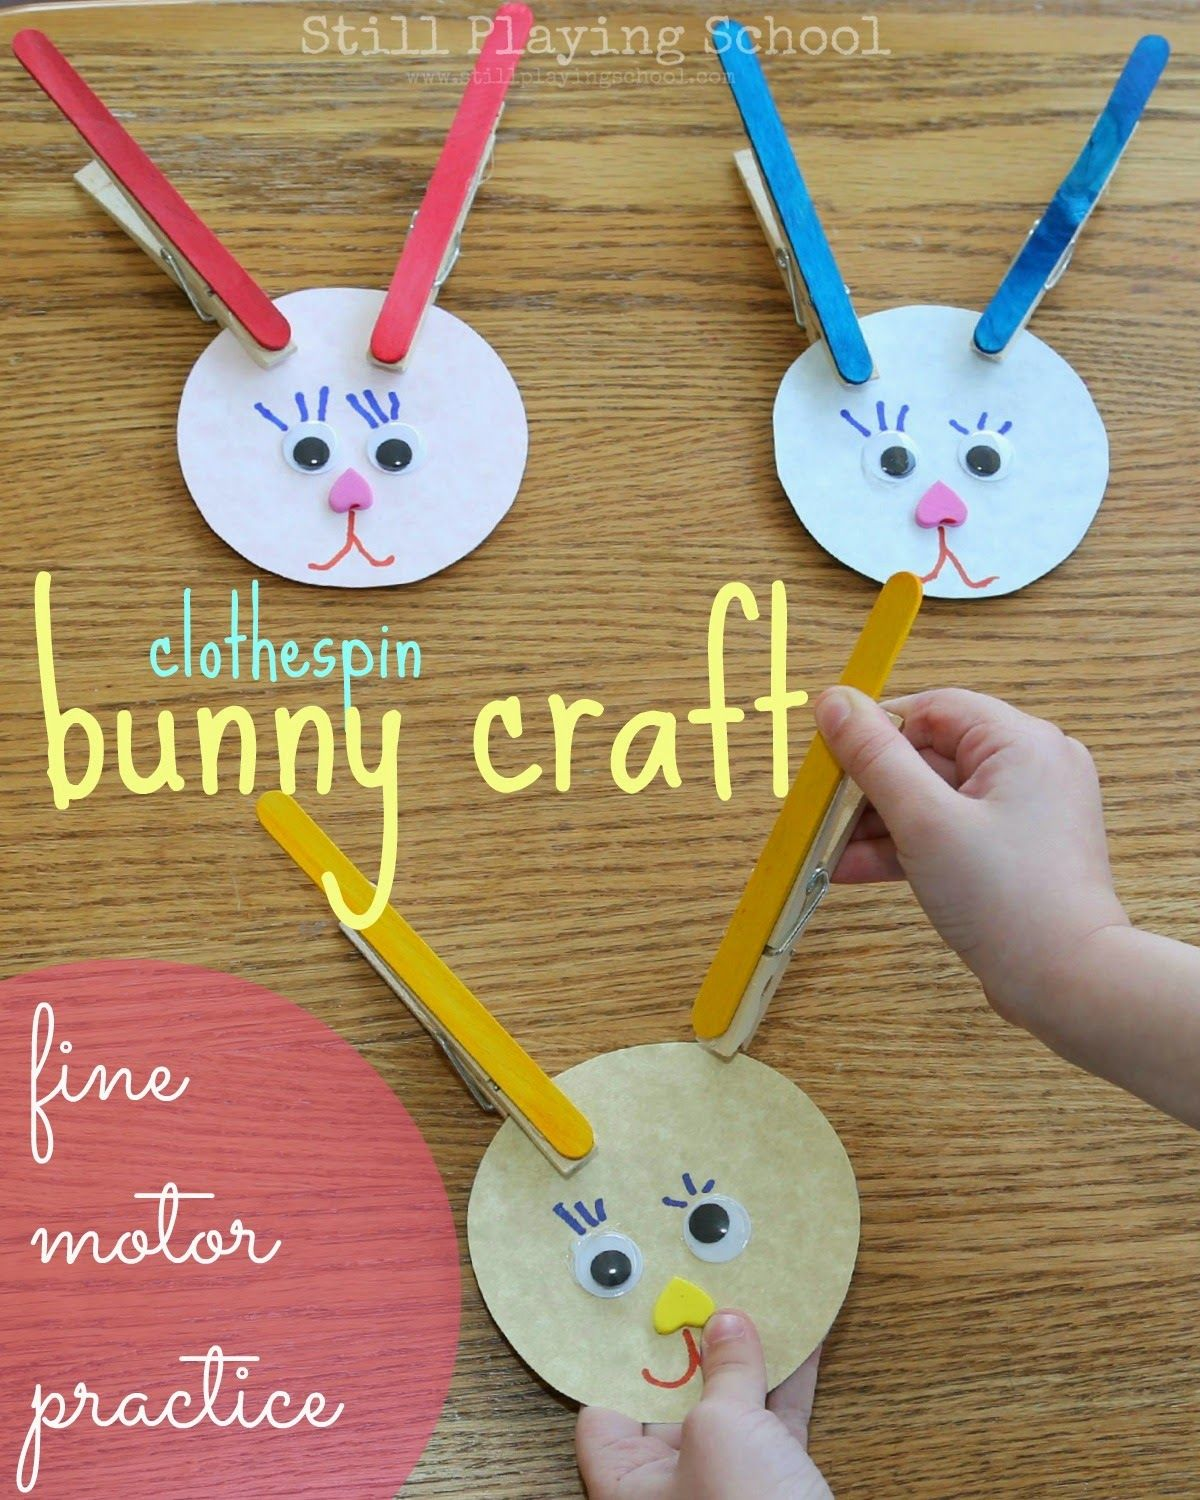 easy craft ideas for kids at school